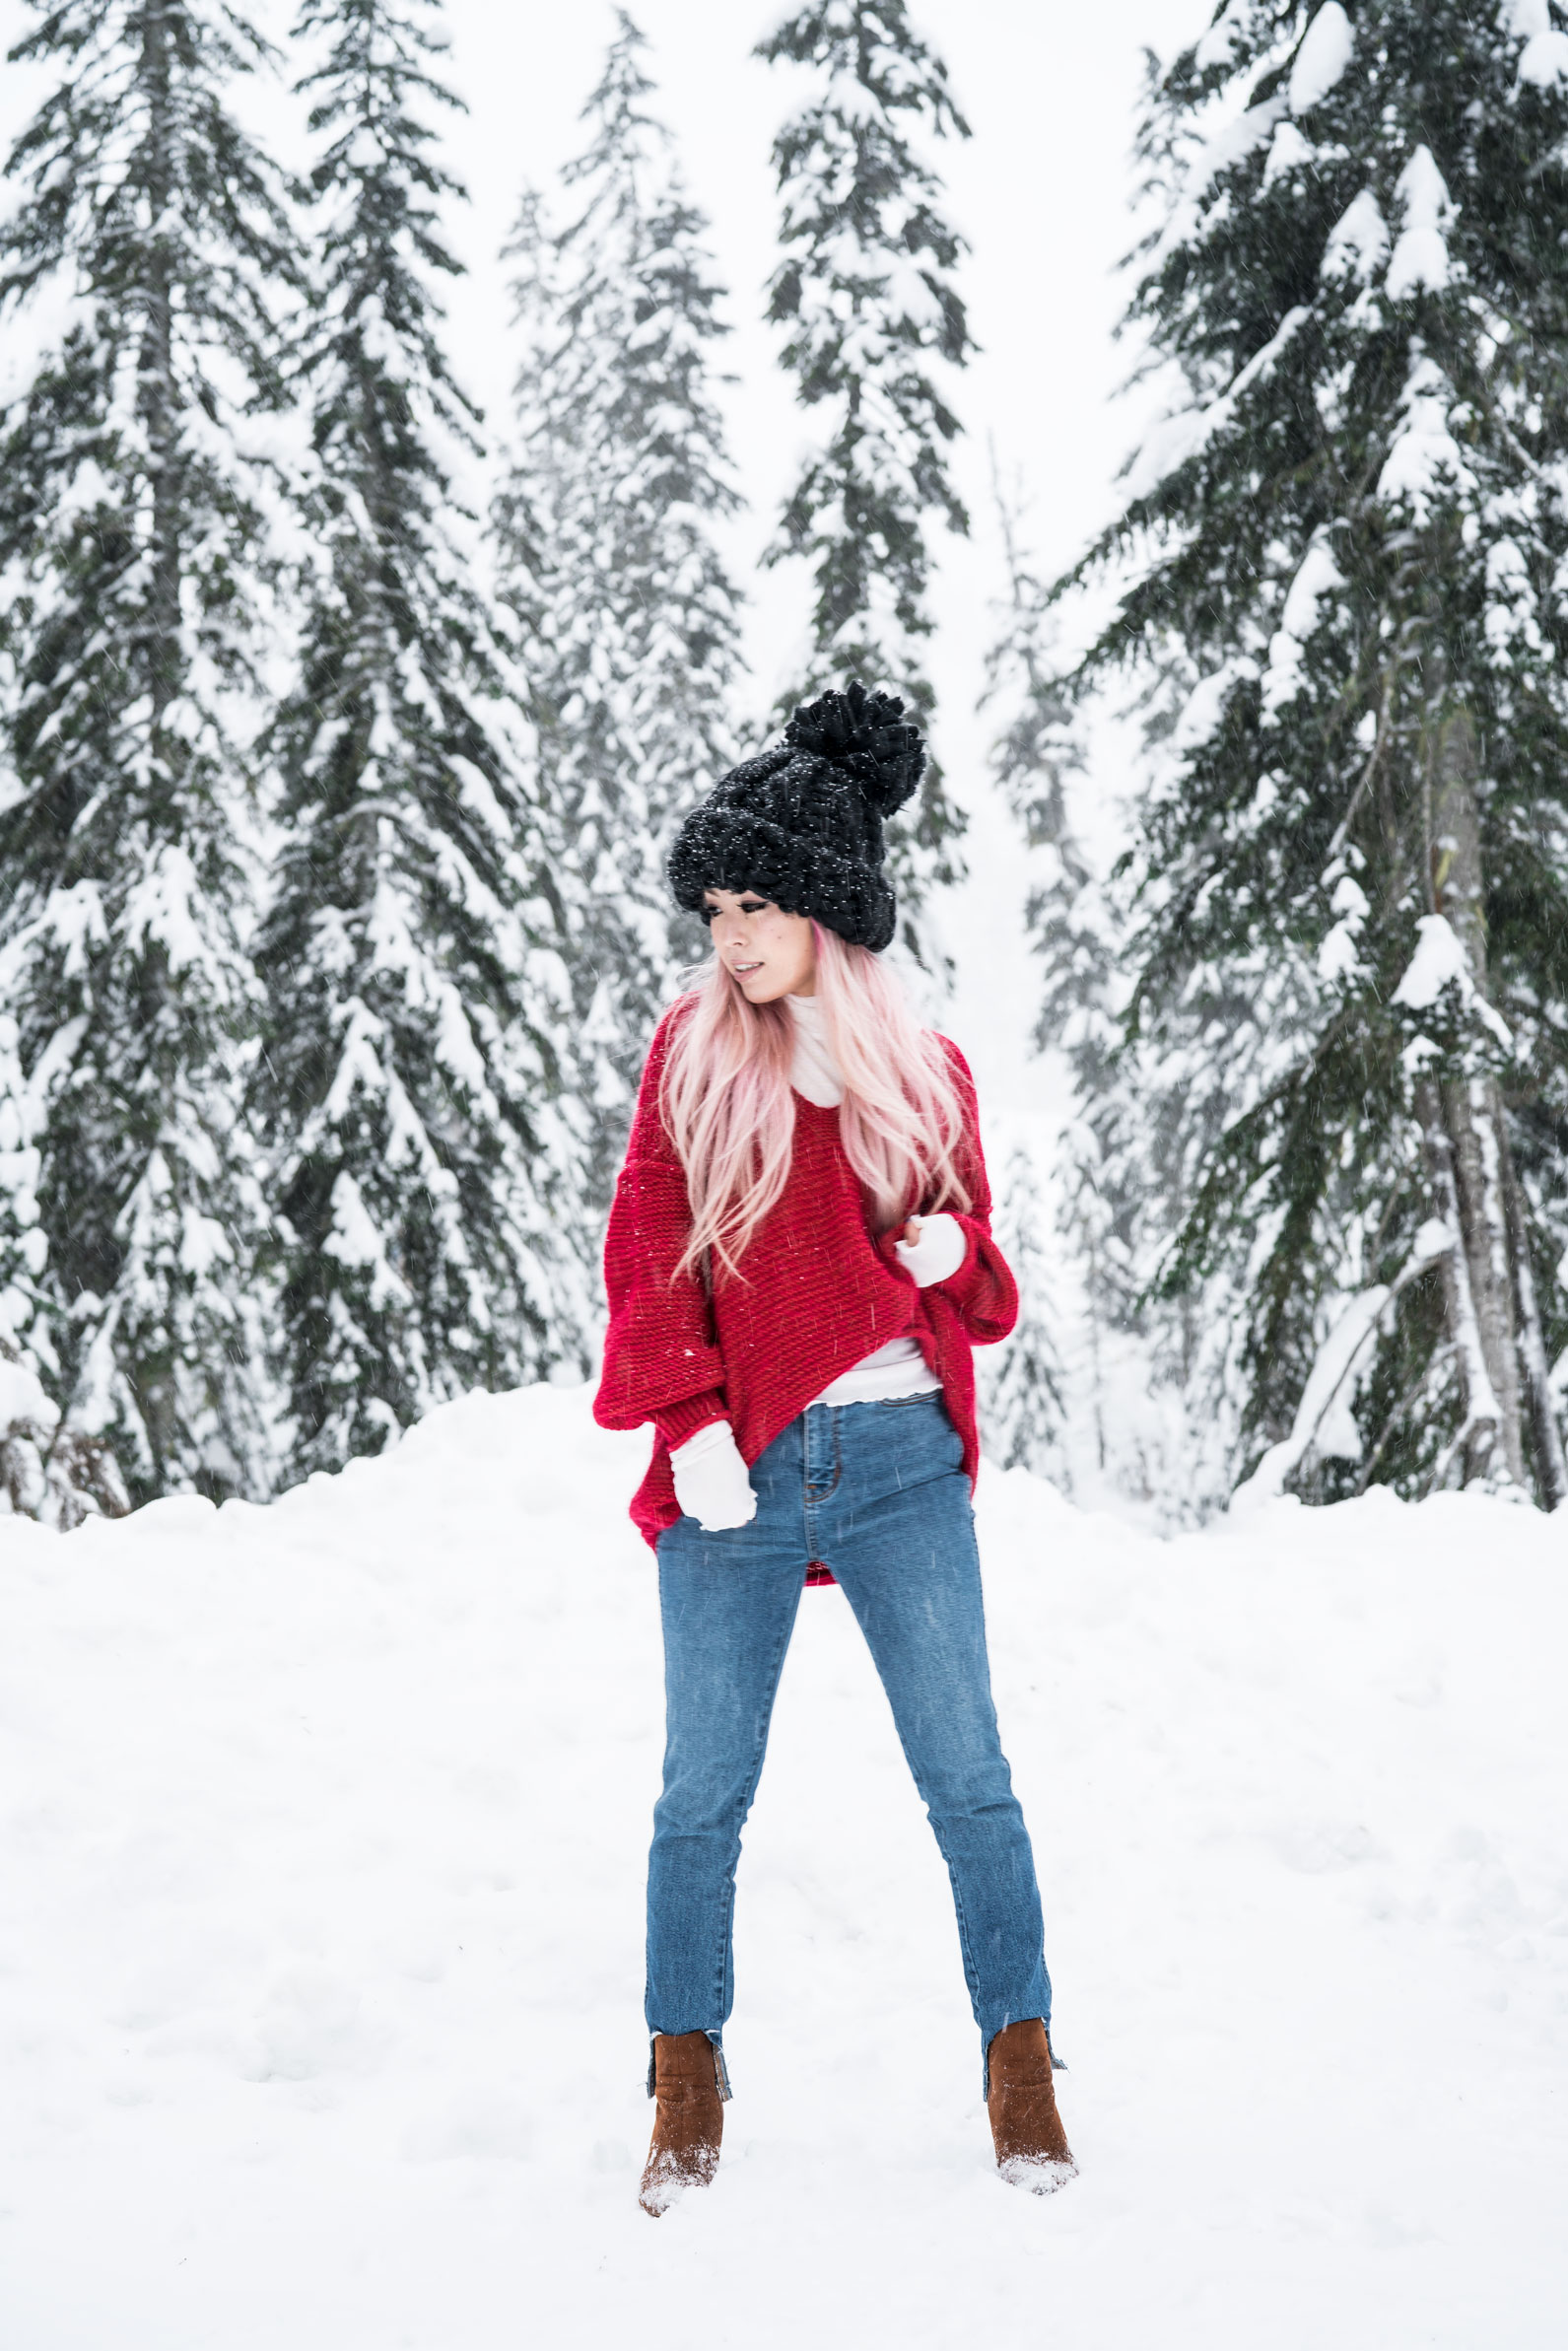 Free people All Mine Sweater, Free People Modern Cuff Layering Top, Free People Ace High Rise Jeans, Free People Bobbi Chunky Pom Beanie, EGO Ankle Boots, Aika's Love Closet, Seattle Fashion Blogger from Japan, Pink Hair 8